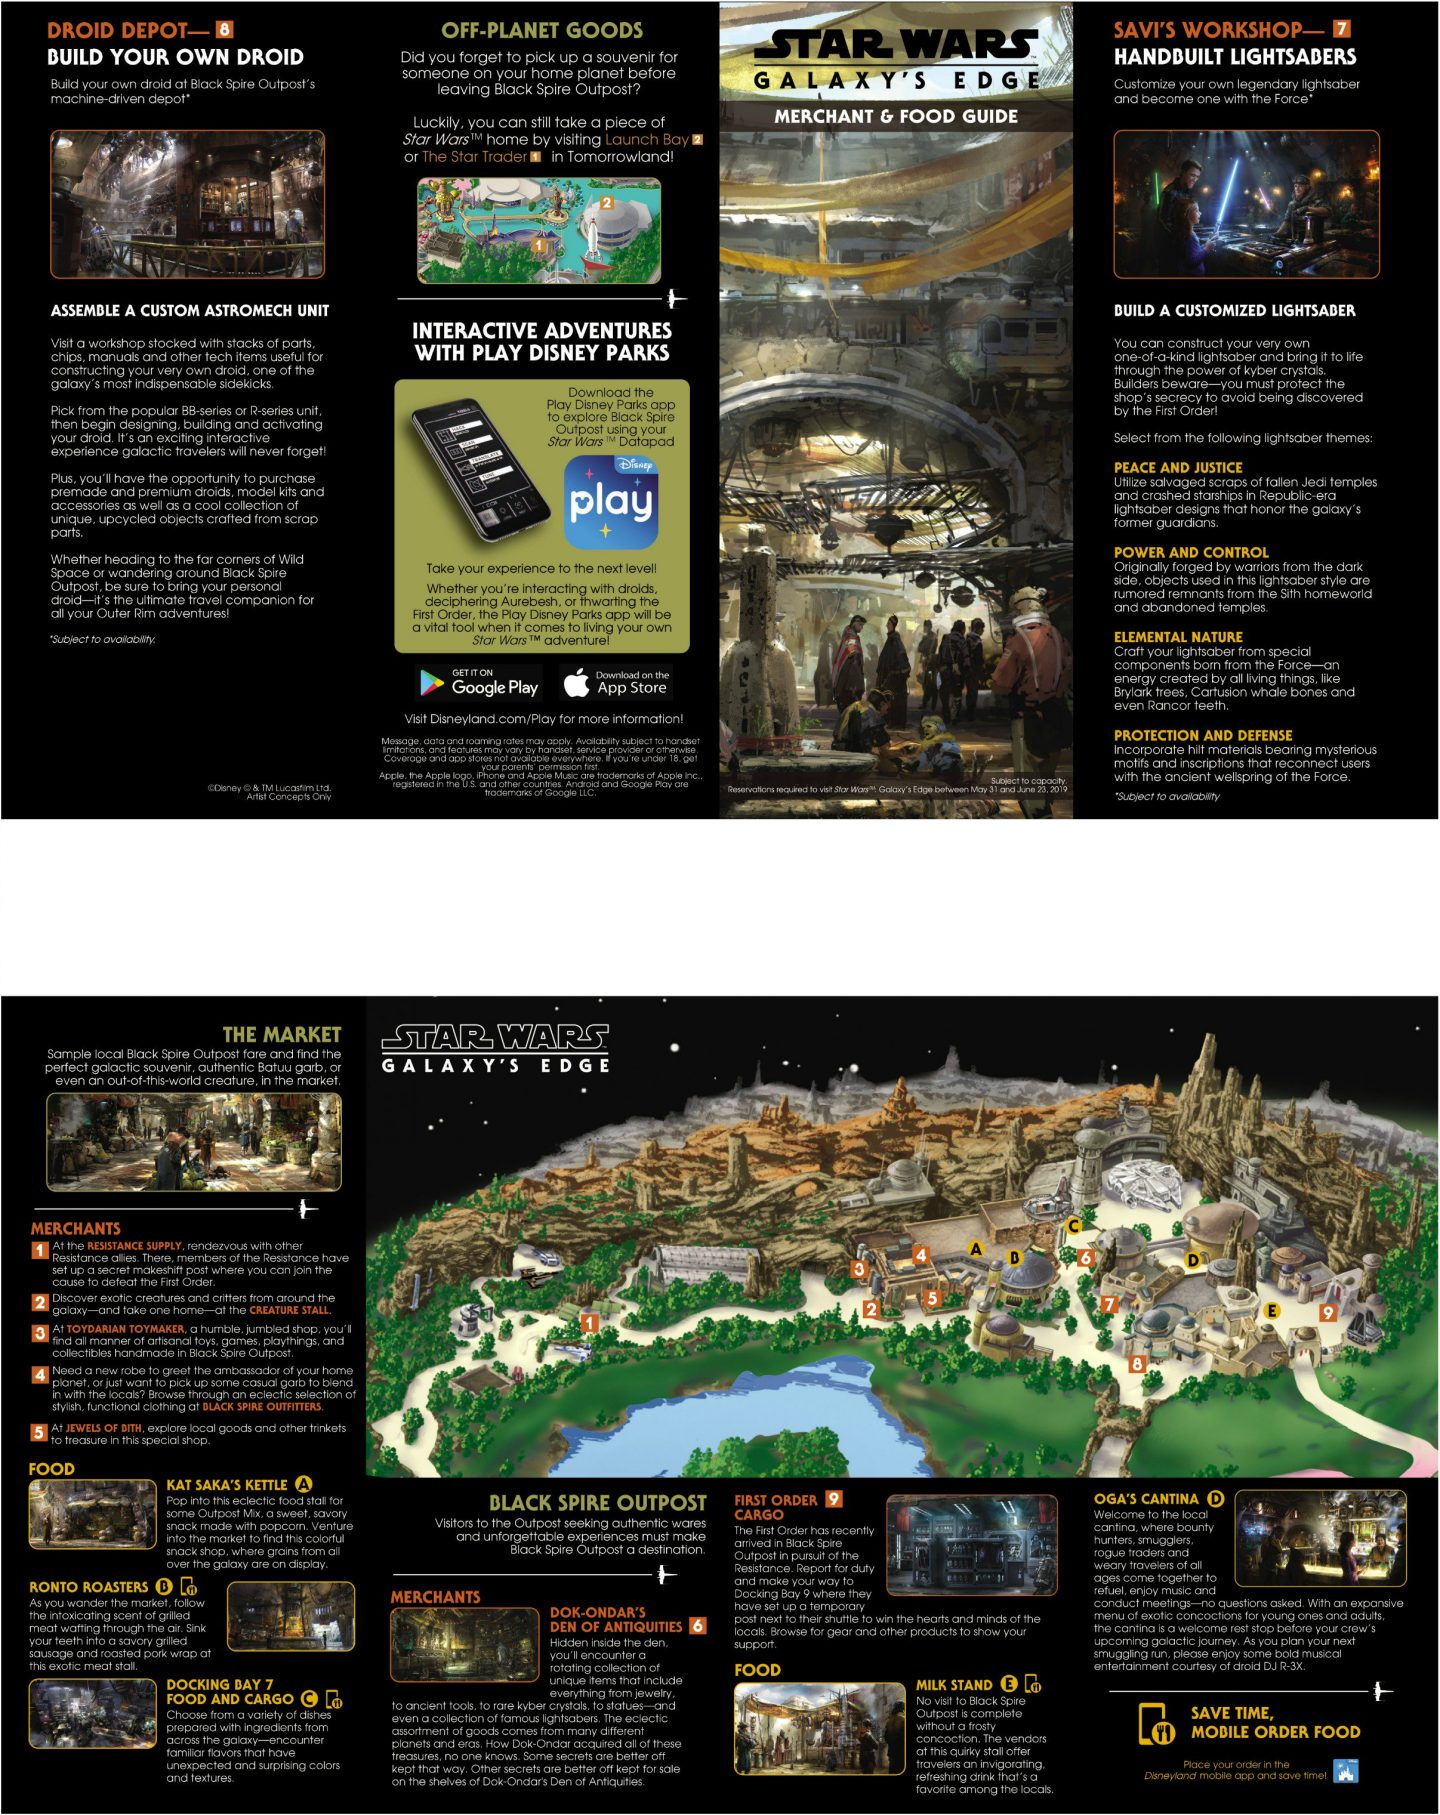 Disneyland's Star Wars Galaxy's Edge Map, Reservations and ... on disneyland minecraft download, disney world map download, disneyland california,